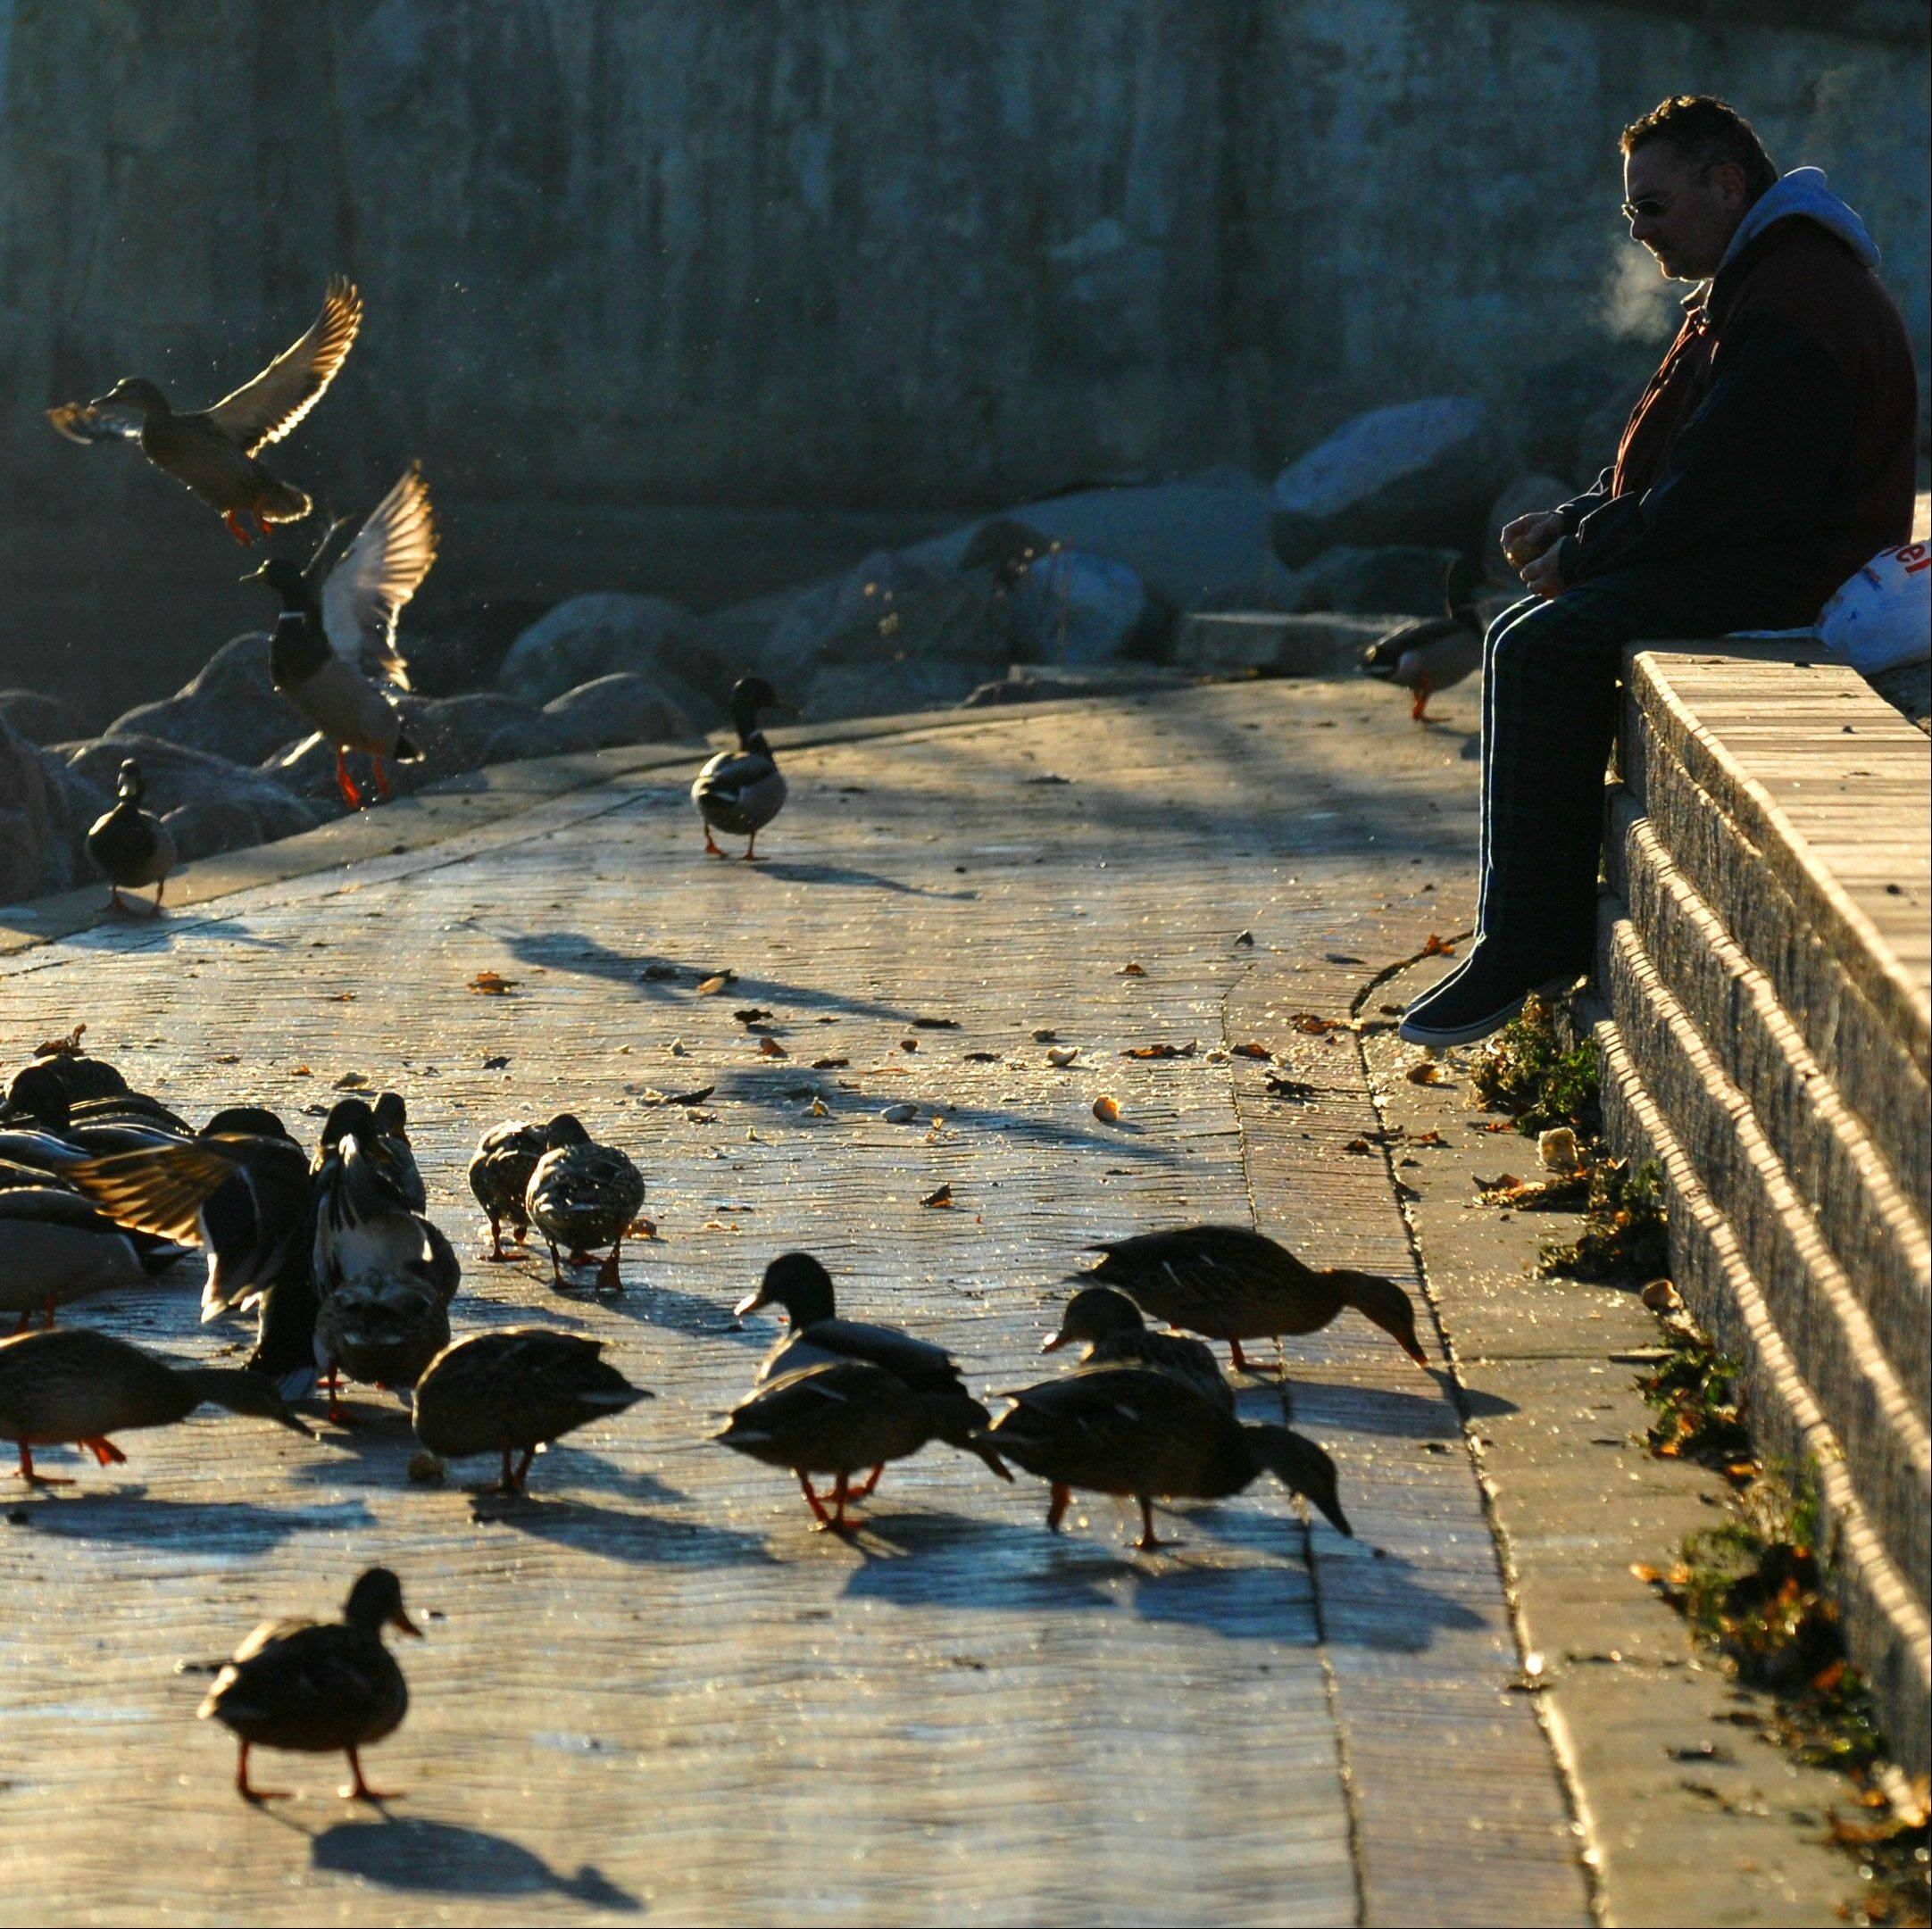 Brian Cole of St. Charles enjoys a sunny and mild Wednesday morning by feeding the ducks along the path near the shore of the Fox River in downtown St. Charles. He's been stopping by to feed them 2-3 times a week for the past six months or so as part of his daily walking routine.